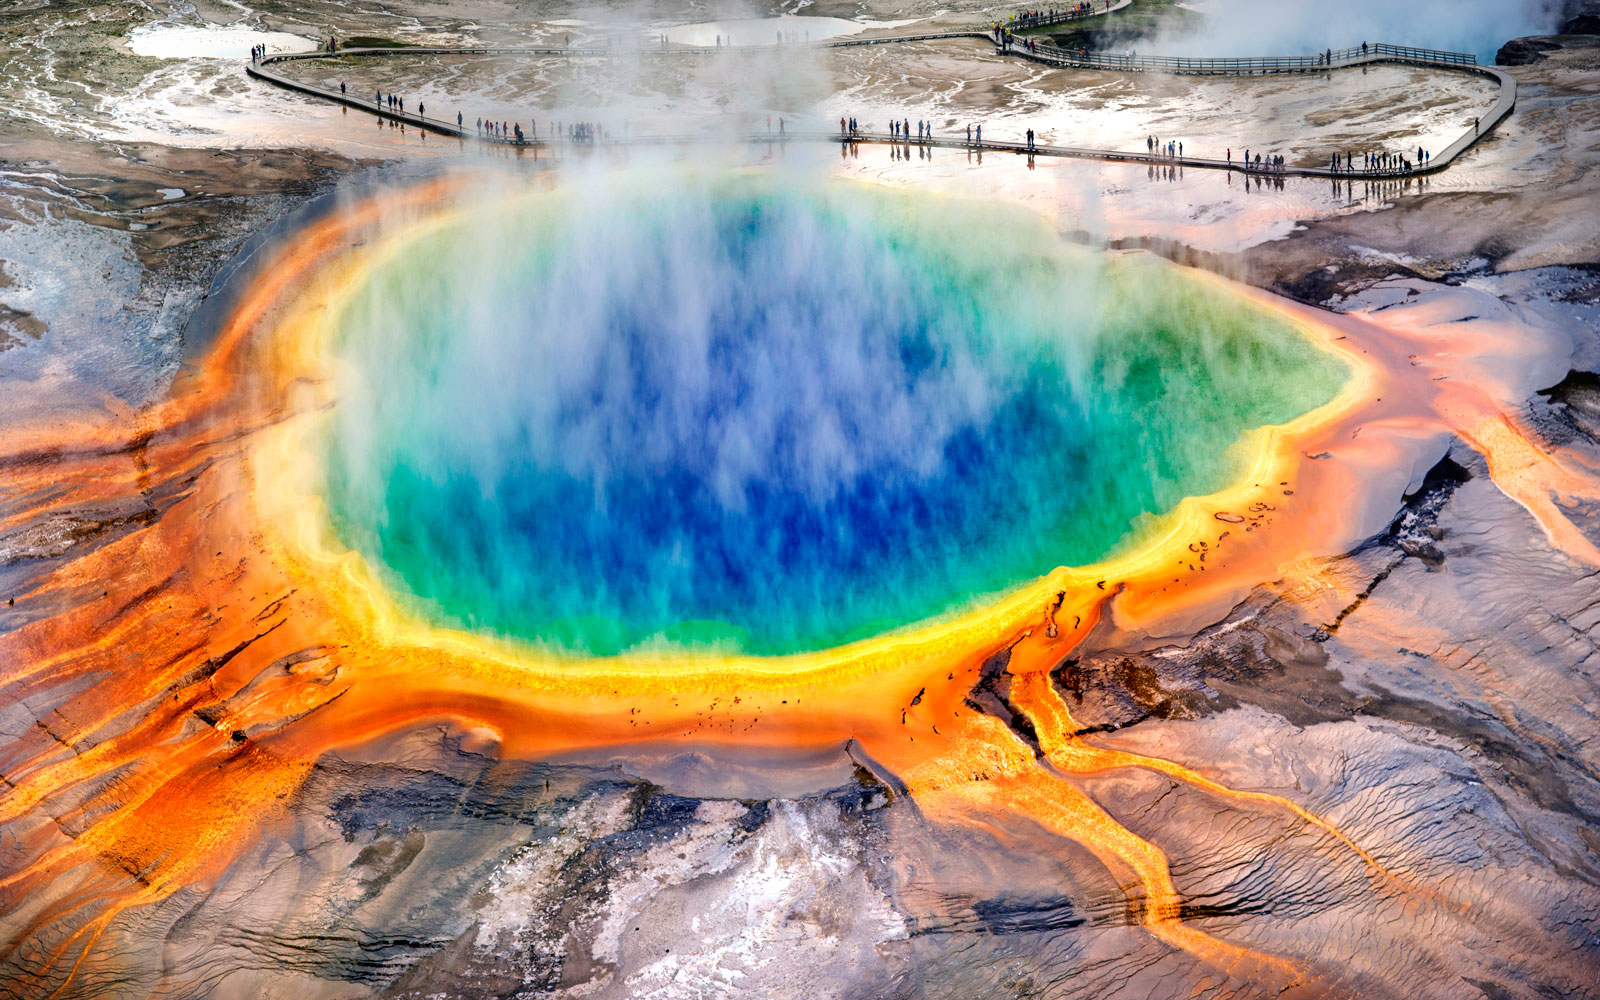 Yellowstone's Supervolcano Could Spew Ash Across the Entire U.S.